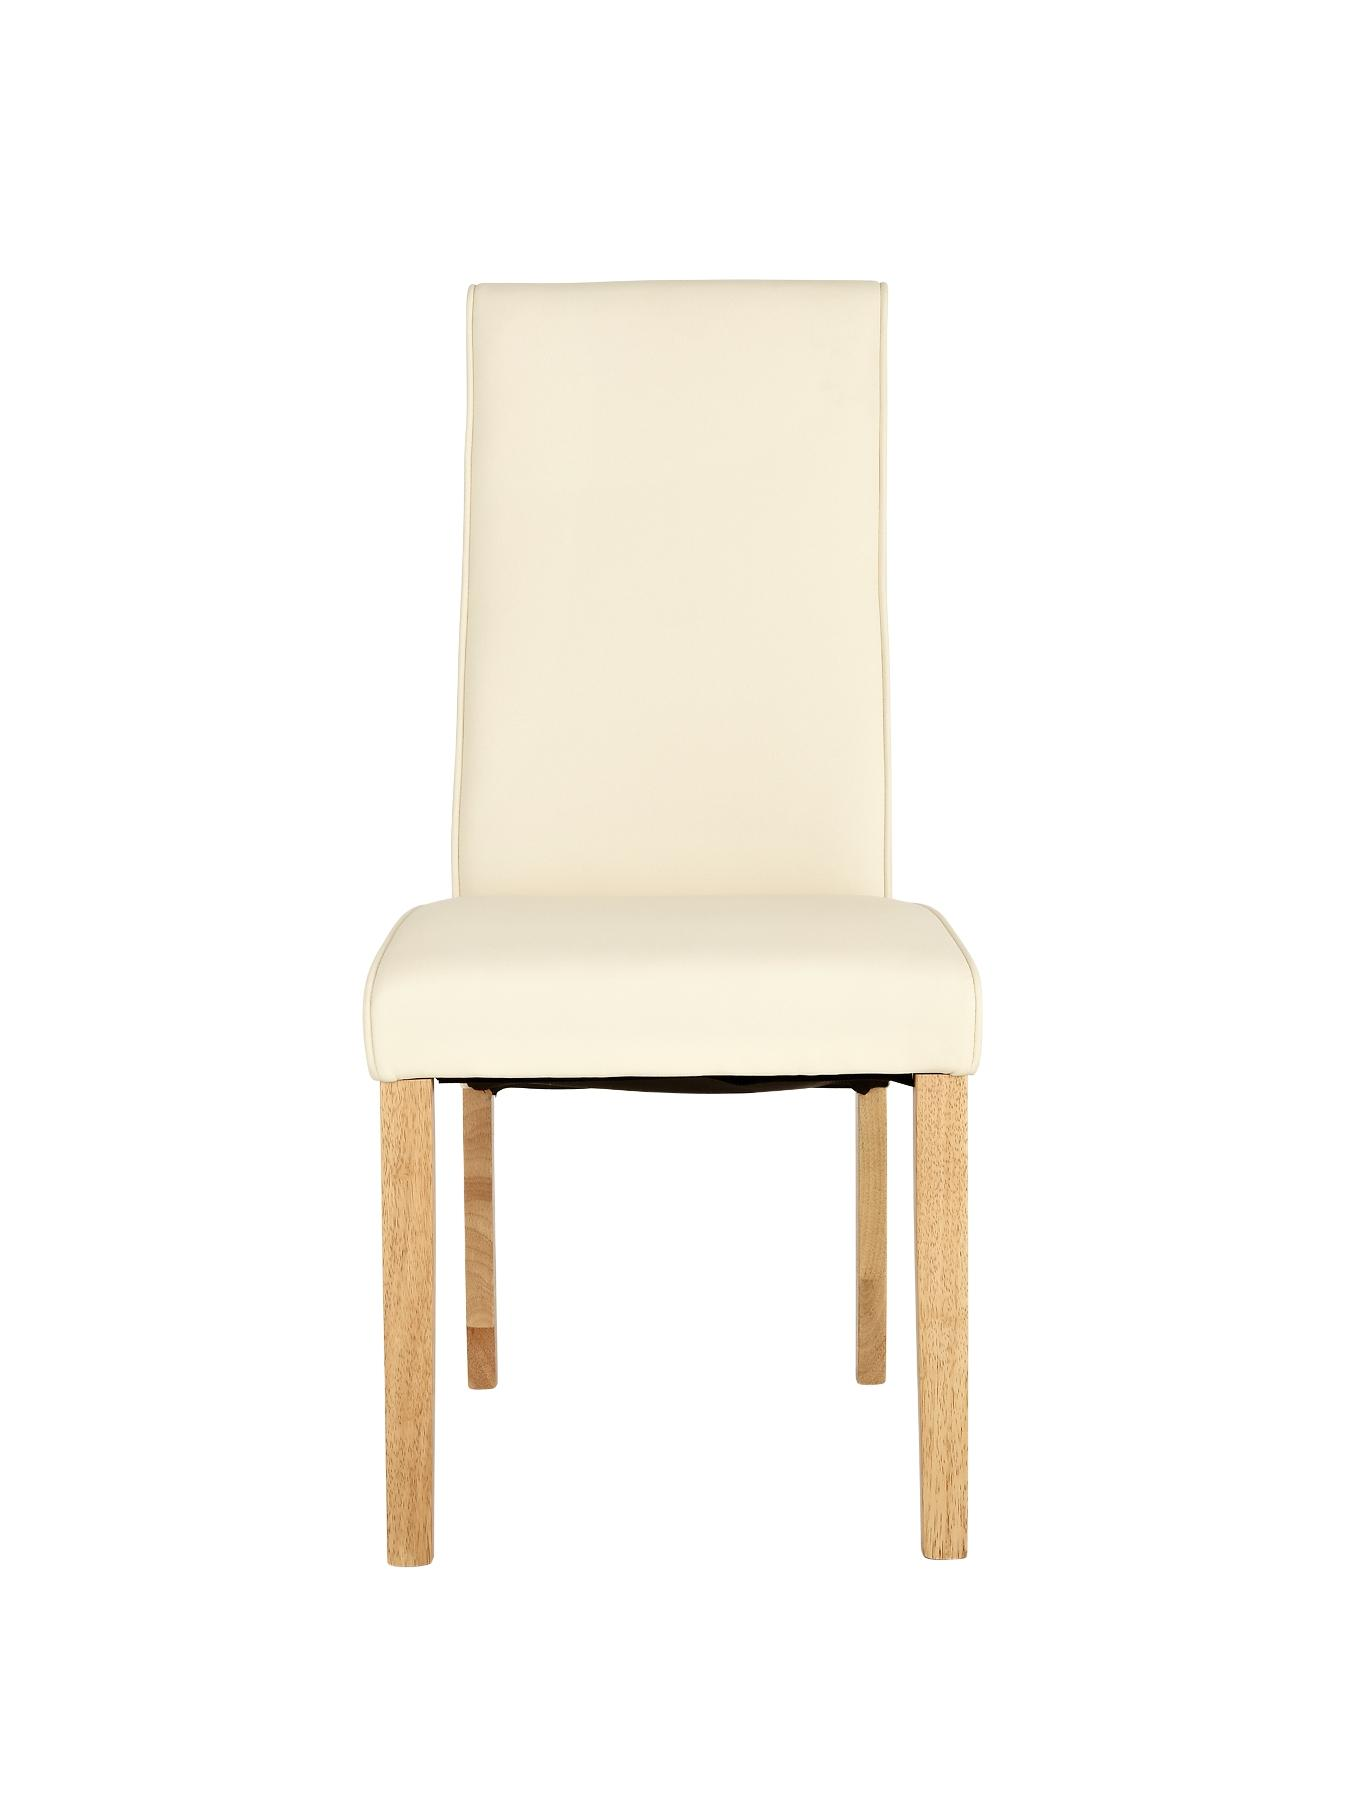 Buckingham Set of 2 Dining Chairs - Cream, Brown,Cream